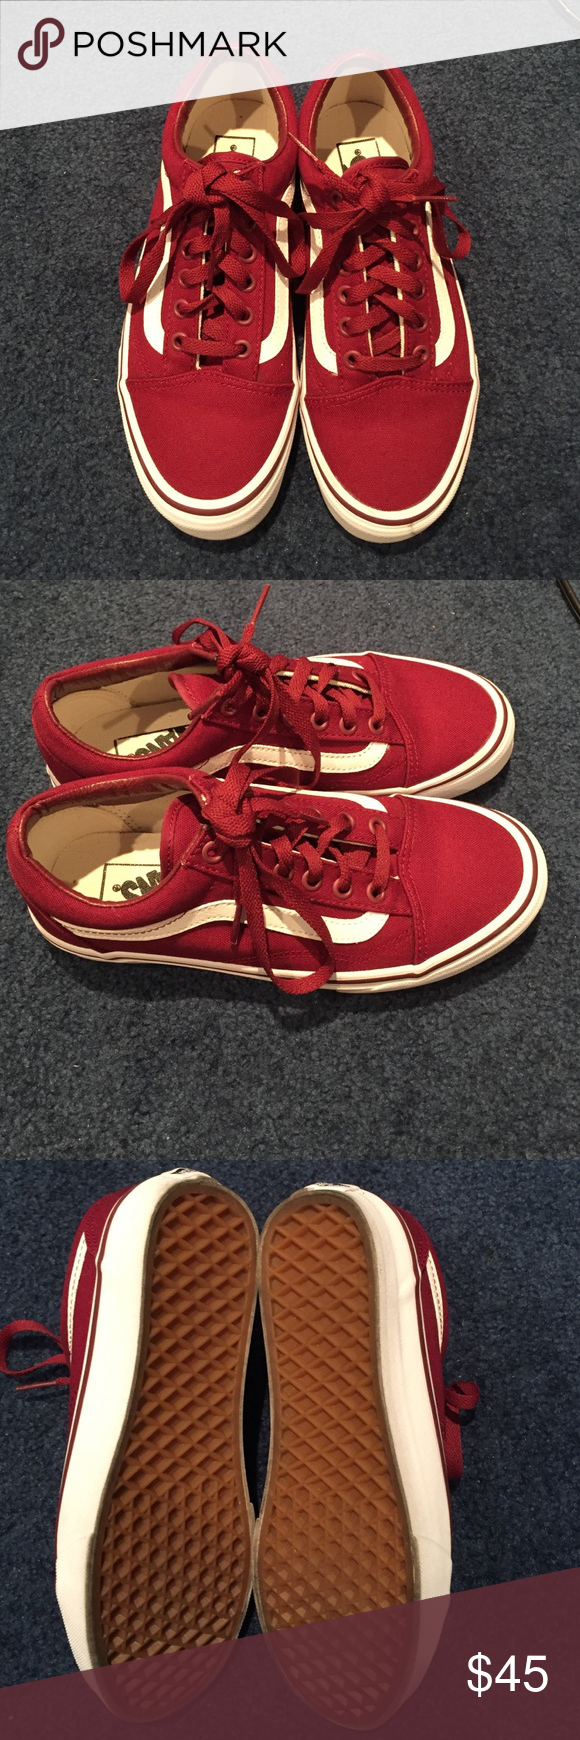 Vans Maroon Sneakers Classic Vans in a maroon color, only worn once for a few hours so in great condition, have the smallest scuff mark in the front of the left shoe as shown in the pic Vans Shoes Sneakers